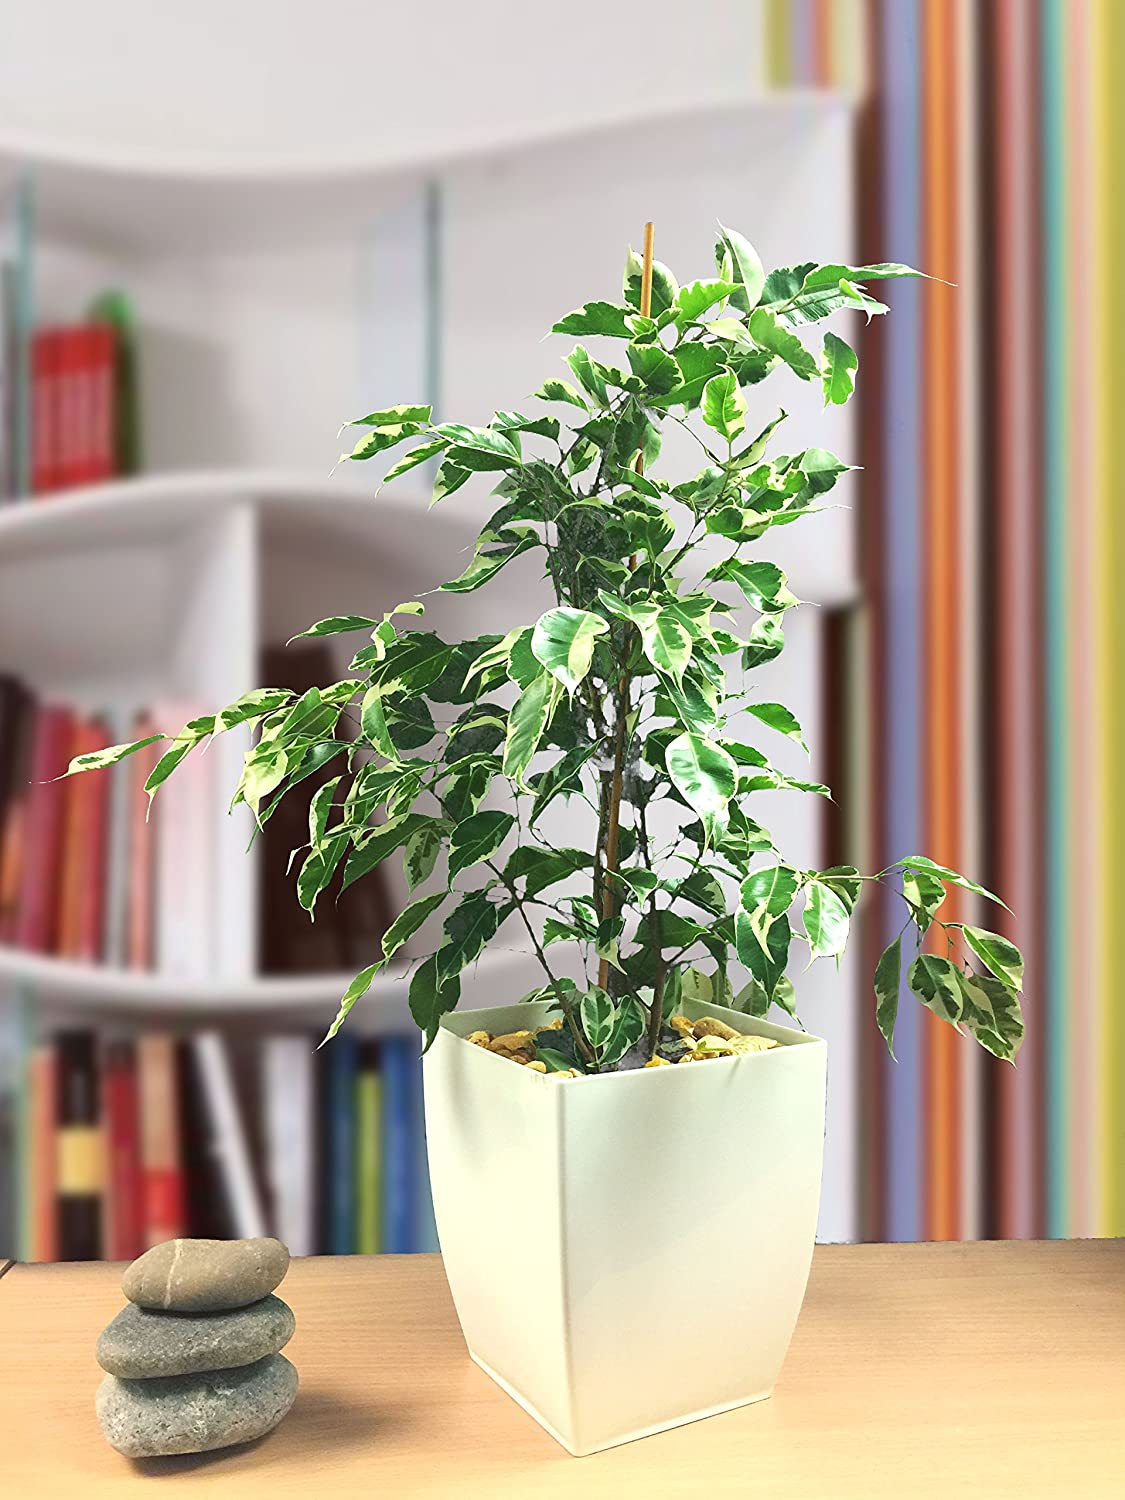 1 Evergreen Ficus Golden King Weeping Fig House Plant in Gloss White Milano Pot Easy Plants